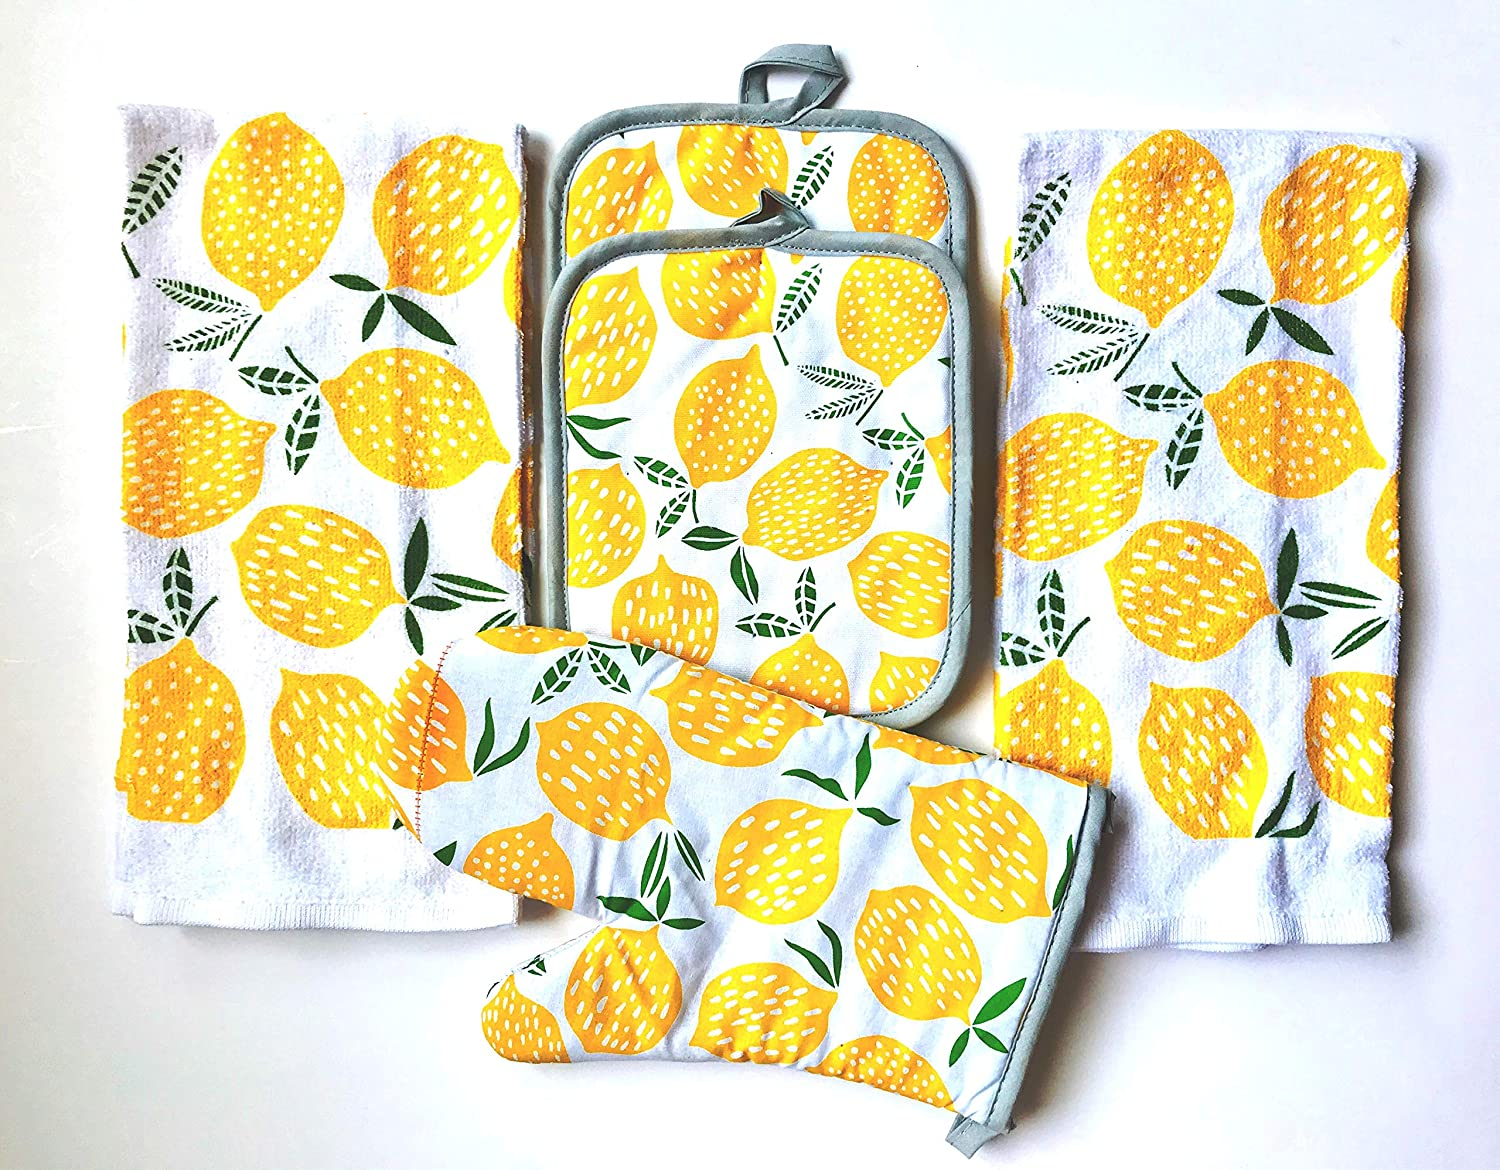 Mainstay 5 Piece Kitchen Set Includes 2 Kitchen Towels, 1 Pot Holders, 2 Oven Mitts (Lots of Lemons)